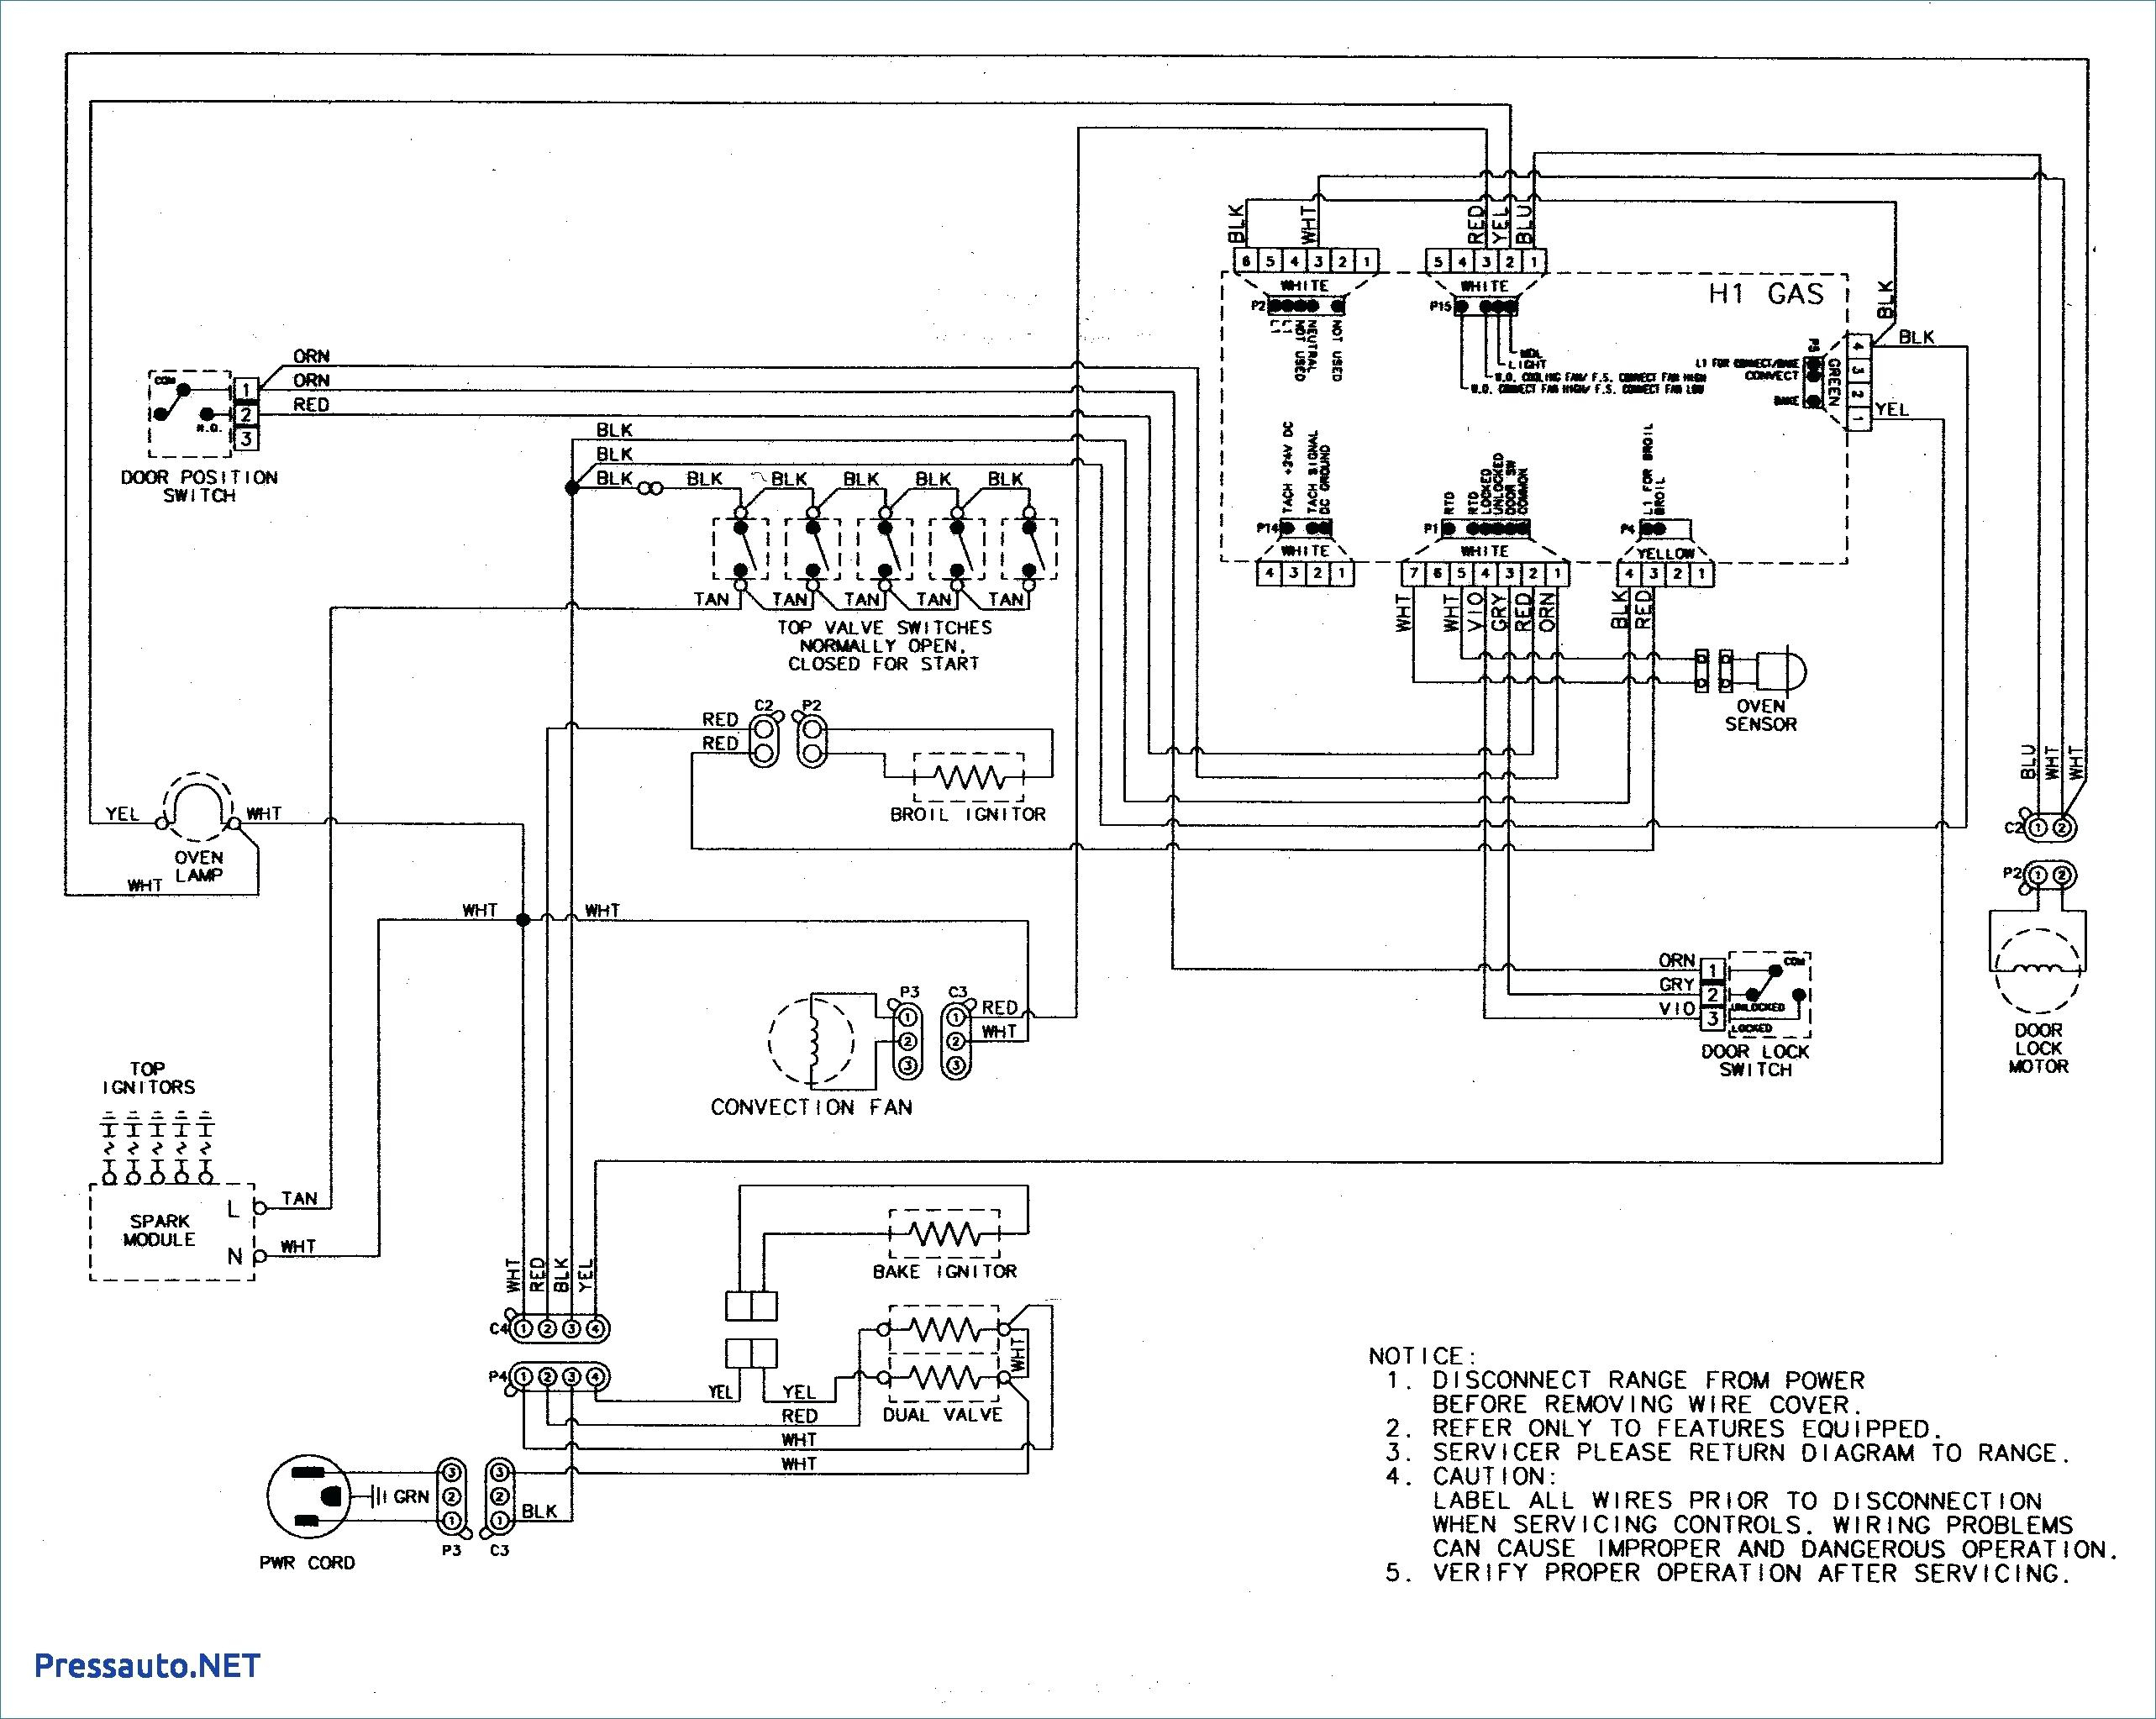 Whirlpool Microwave Wiring Diagram - 2005 Accord Fuse Box for Wiring  Diagram Schematics | Whirlpool Wiring Diagram |  | Wiring Diagram Schematics